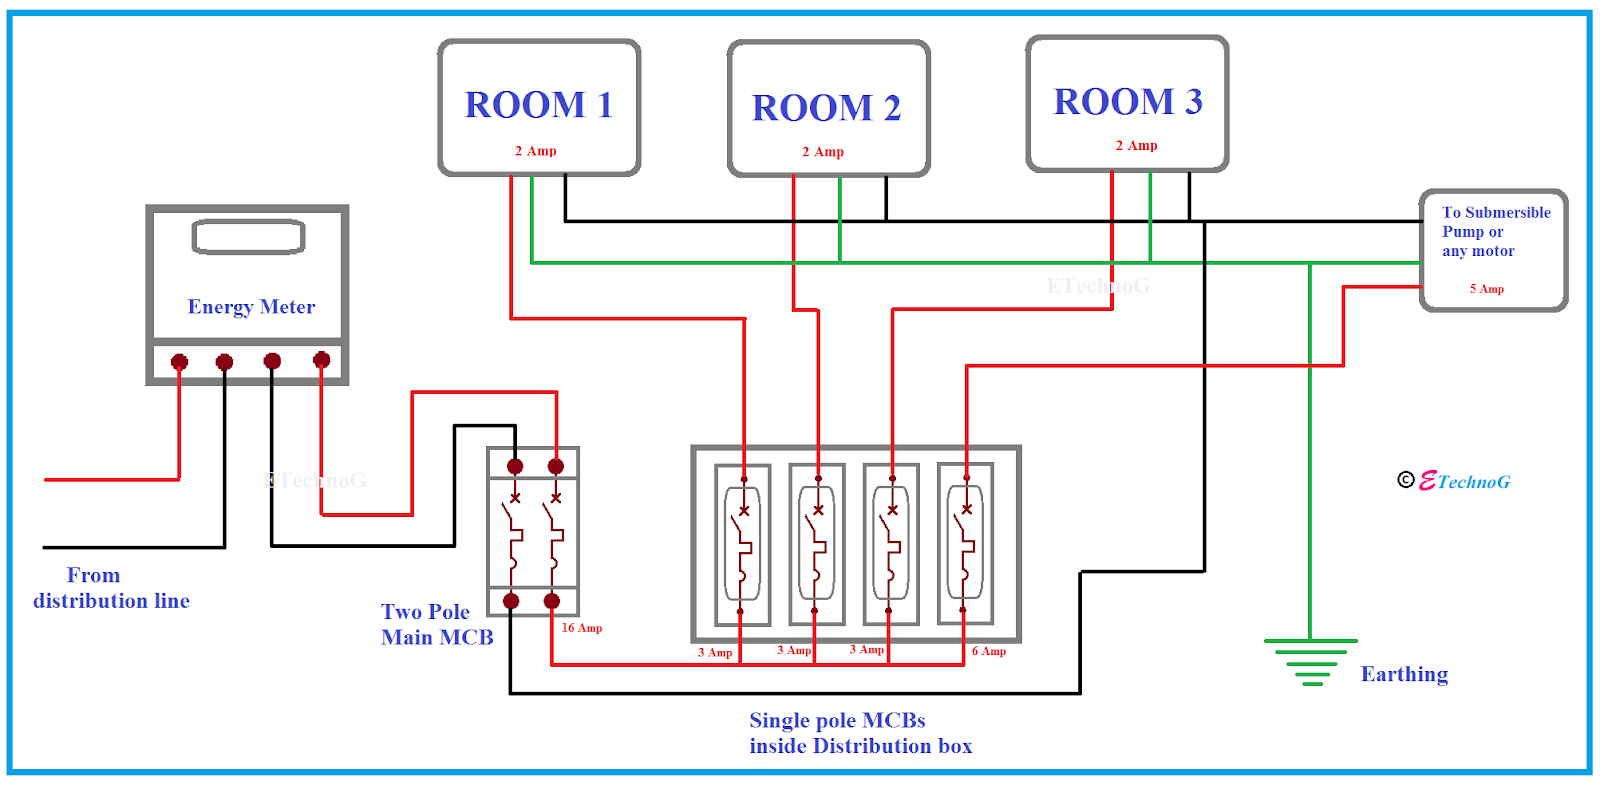 wiring diagram power of a room everything wiring diagram wiring diagram power of a room [ 1600 x 789 Pixel ]